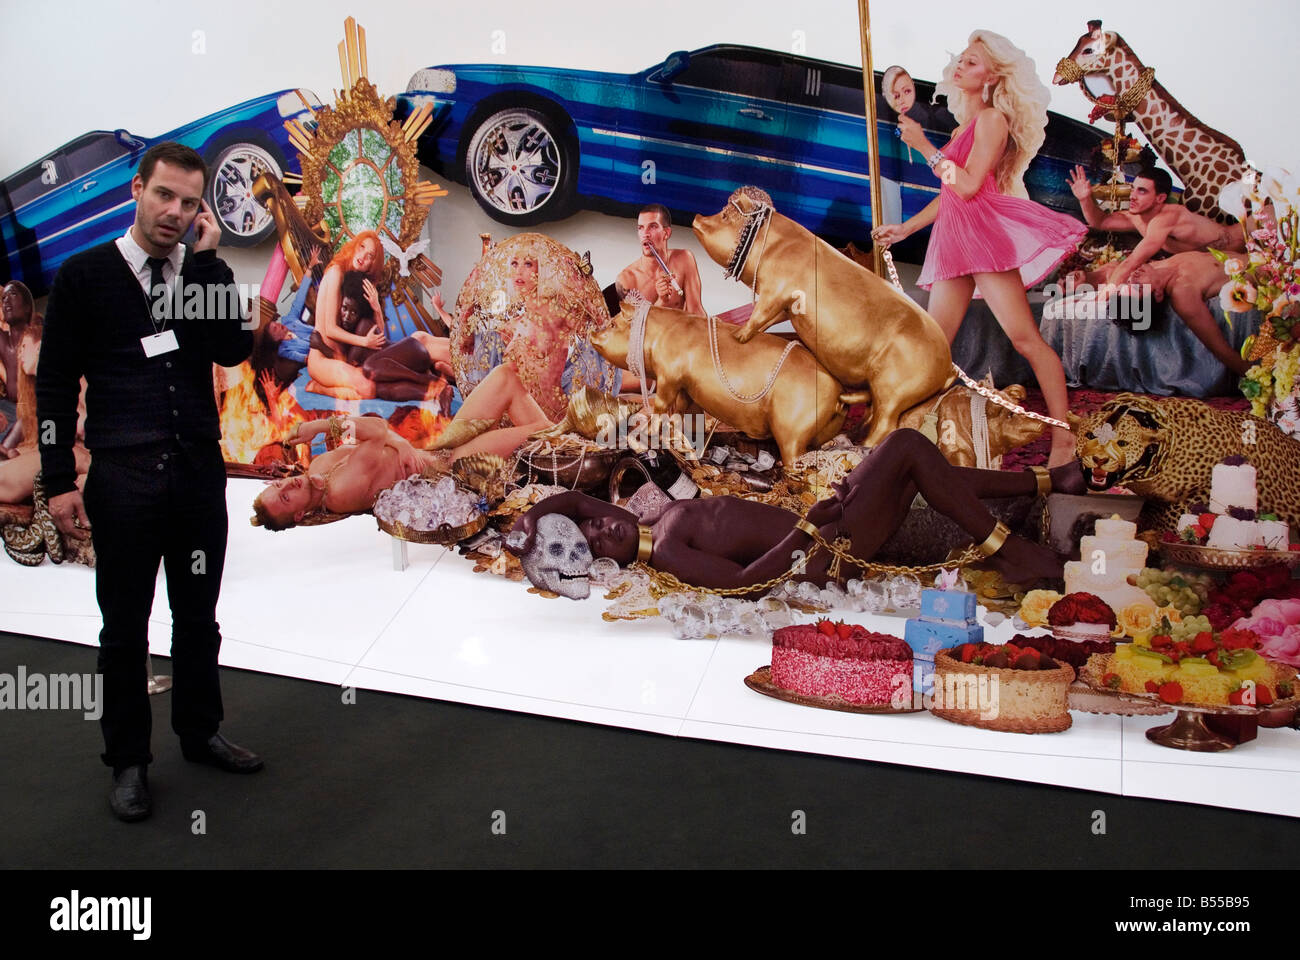 Frieze art fair Decadence by David LaChapelle - Stock Image